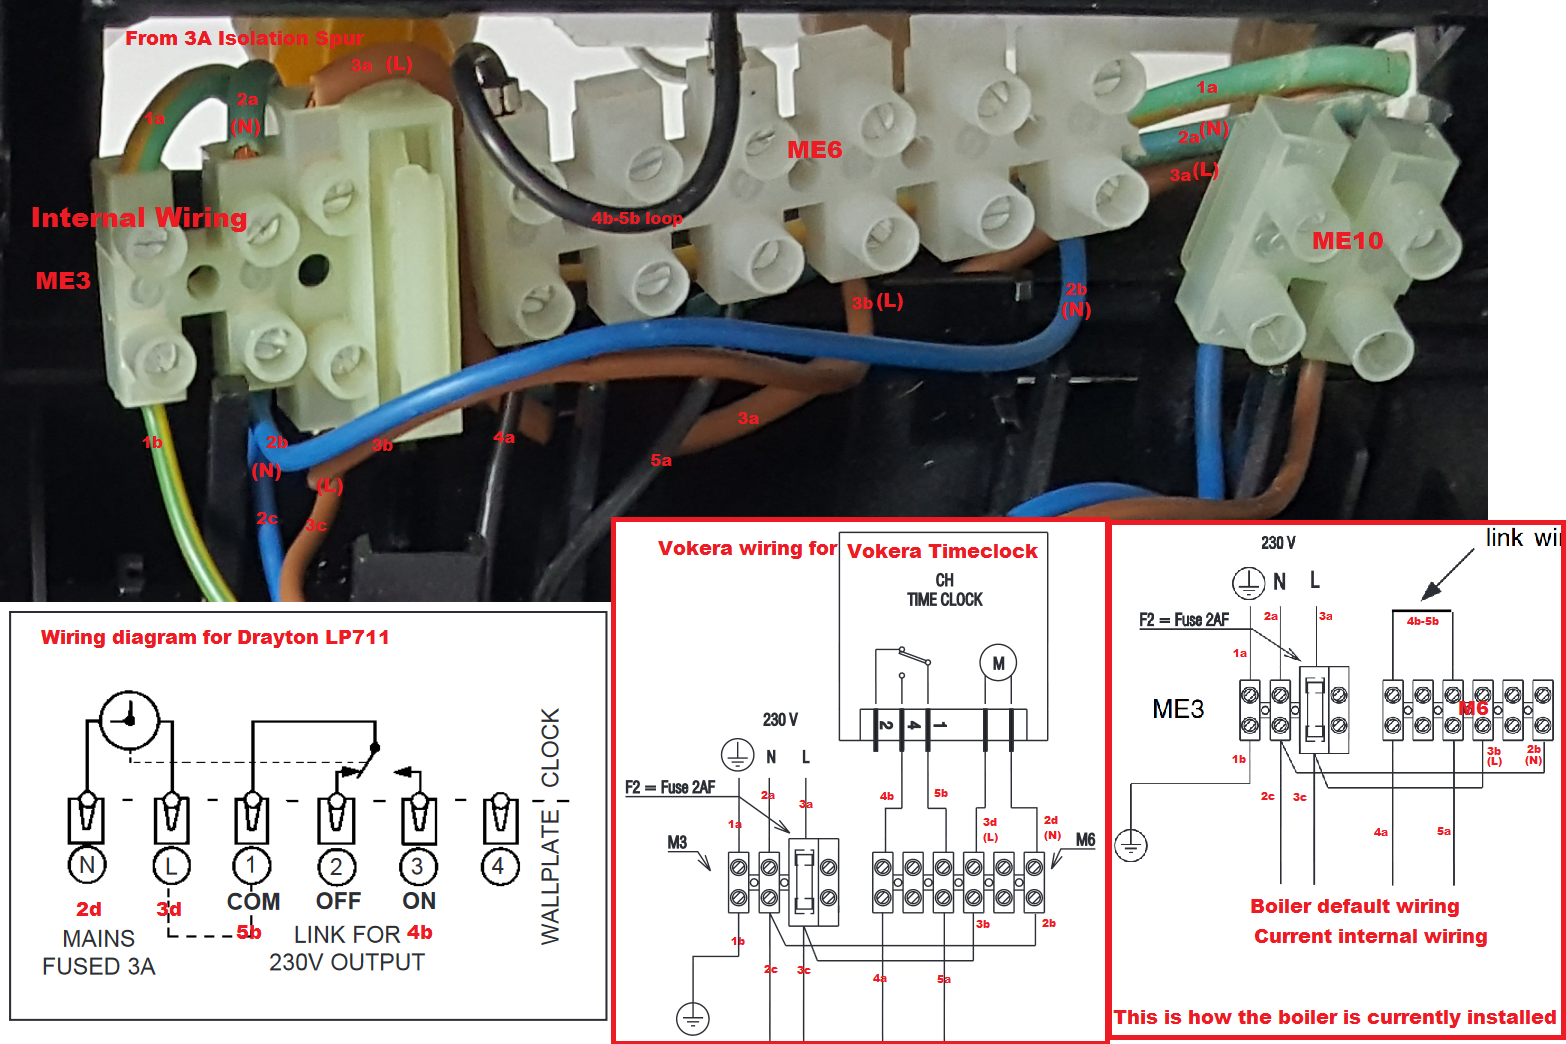 full boiler wiring help wanted, please; vokera linea 28he to drayton drayton lp711 wiring diagram at n-0.co